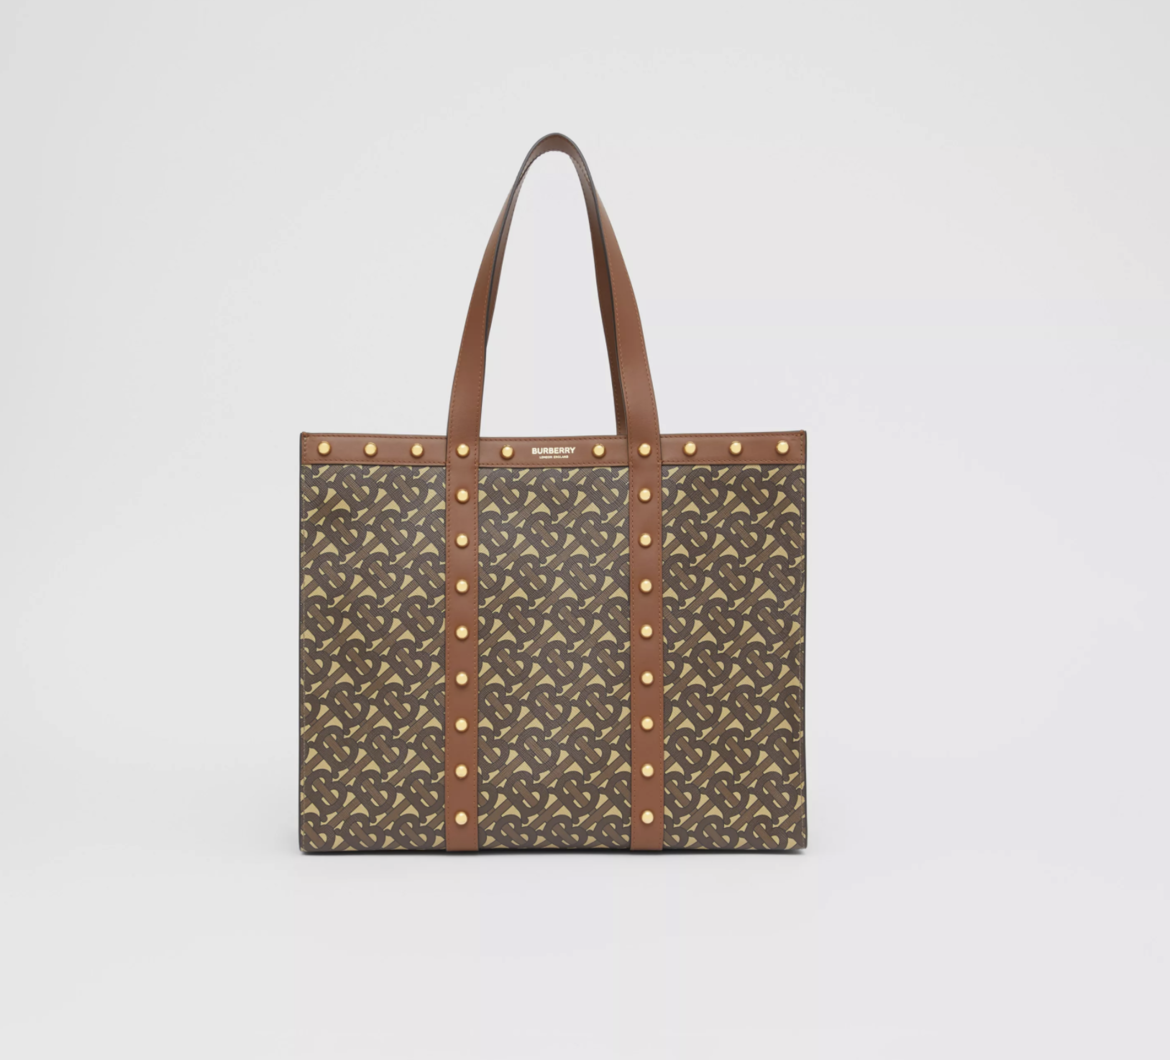 BURBERRY Small Monogram Print E-canvas Tote Bag HK$11,500